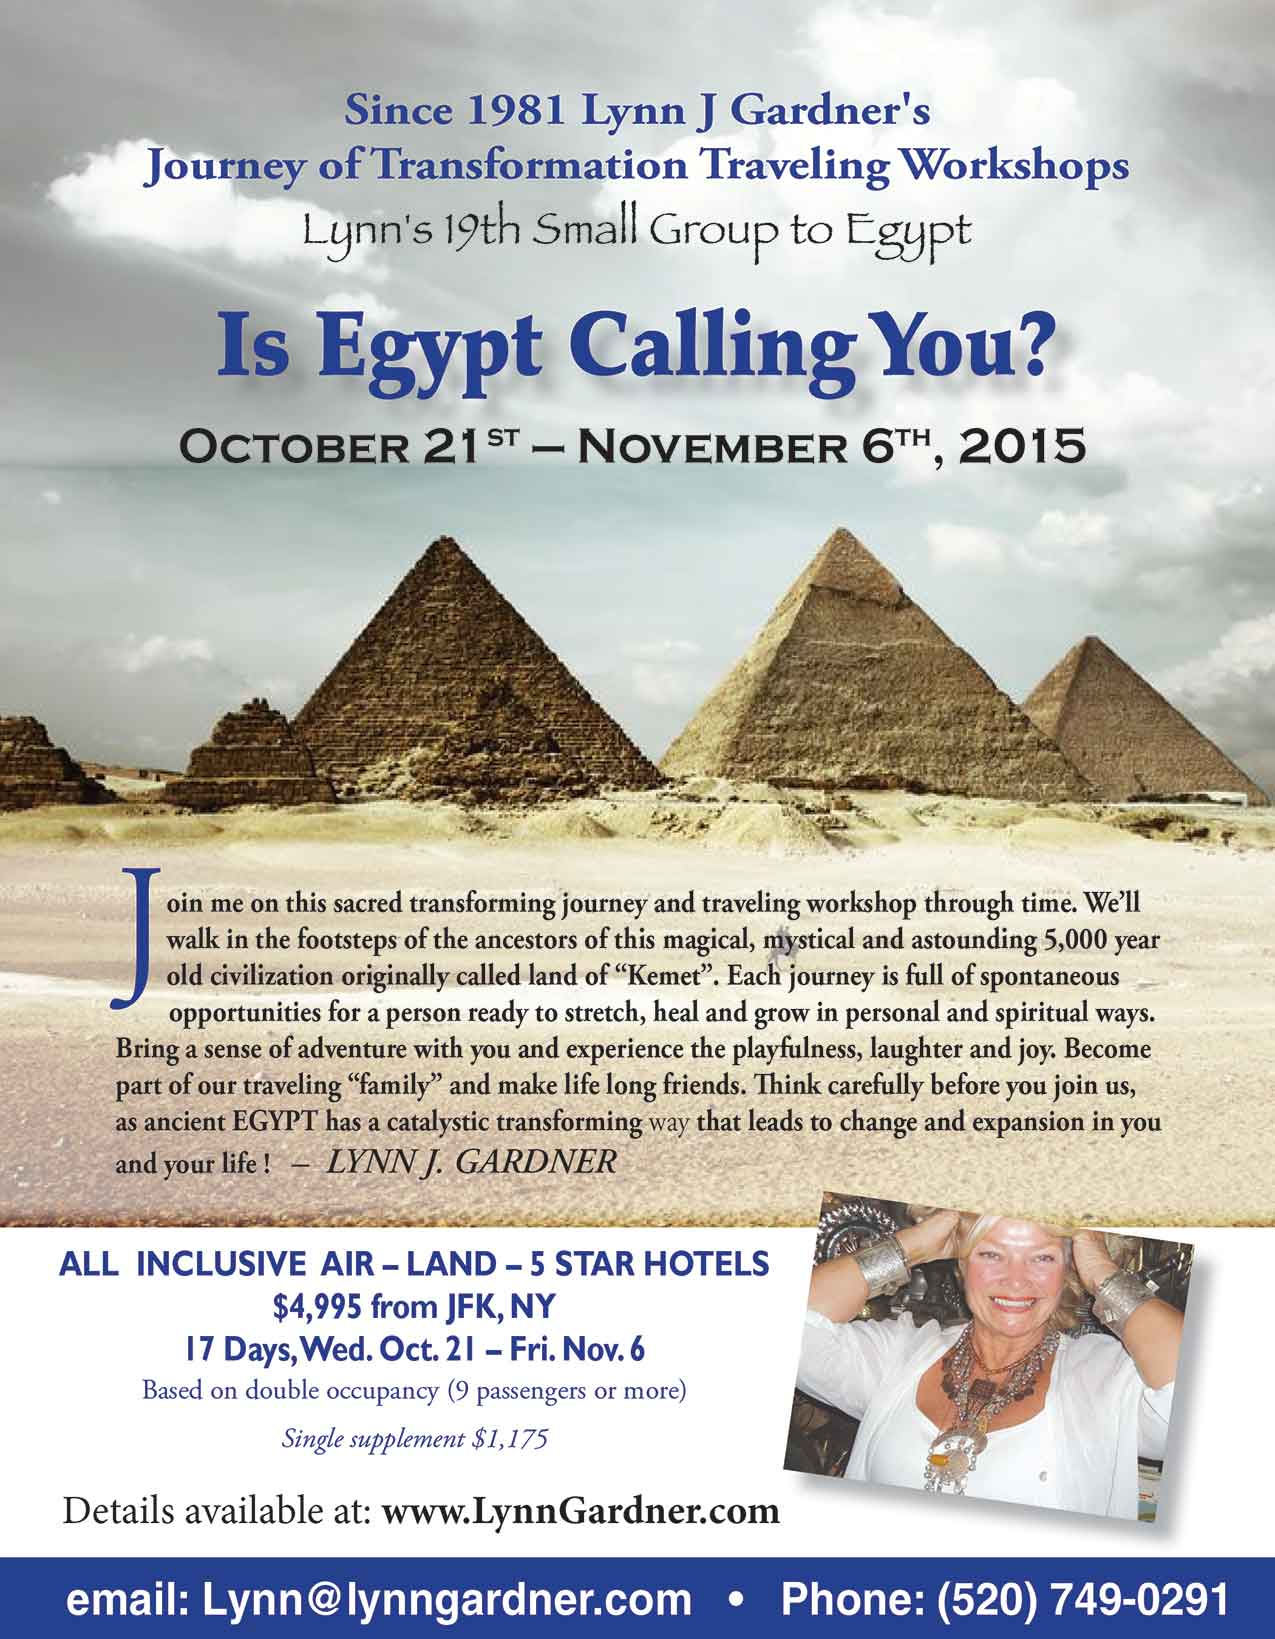 Lynn's 19th small group to Egypt: Oct 21 - Nov 6 2015